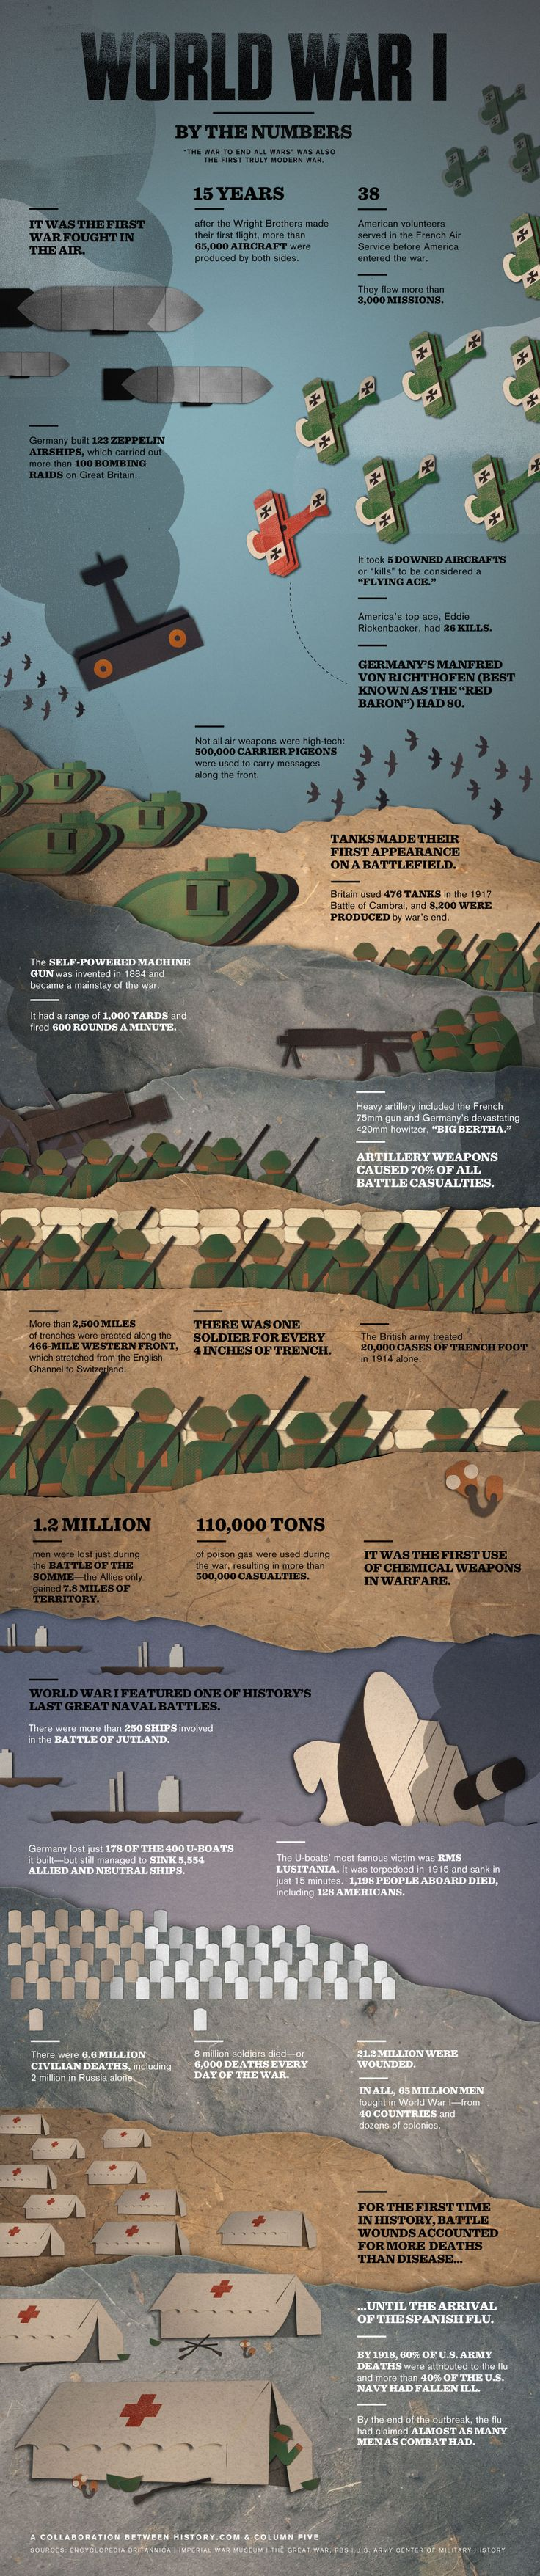 World War I infographic